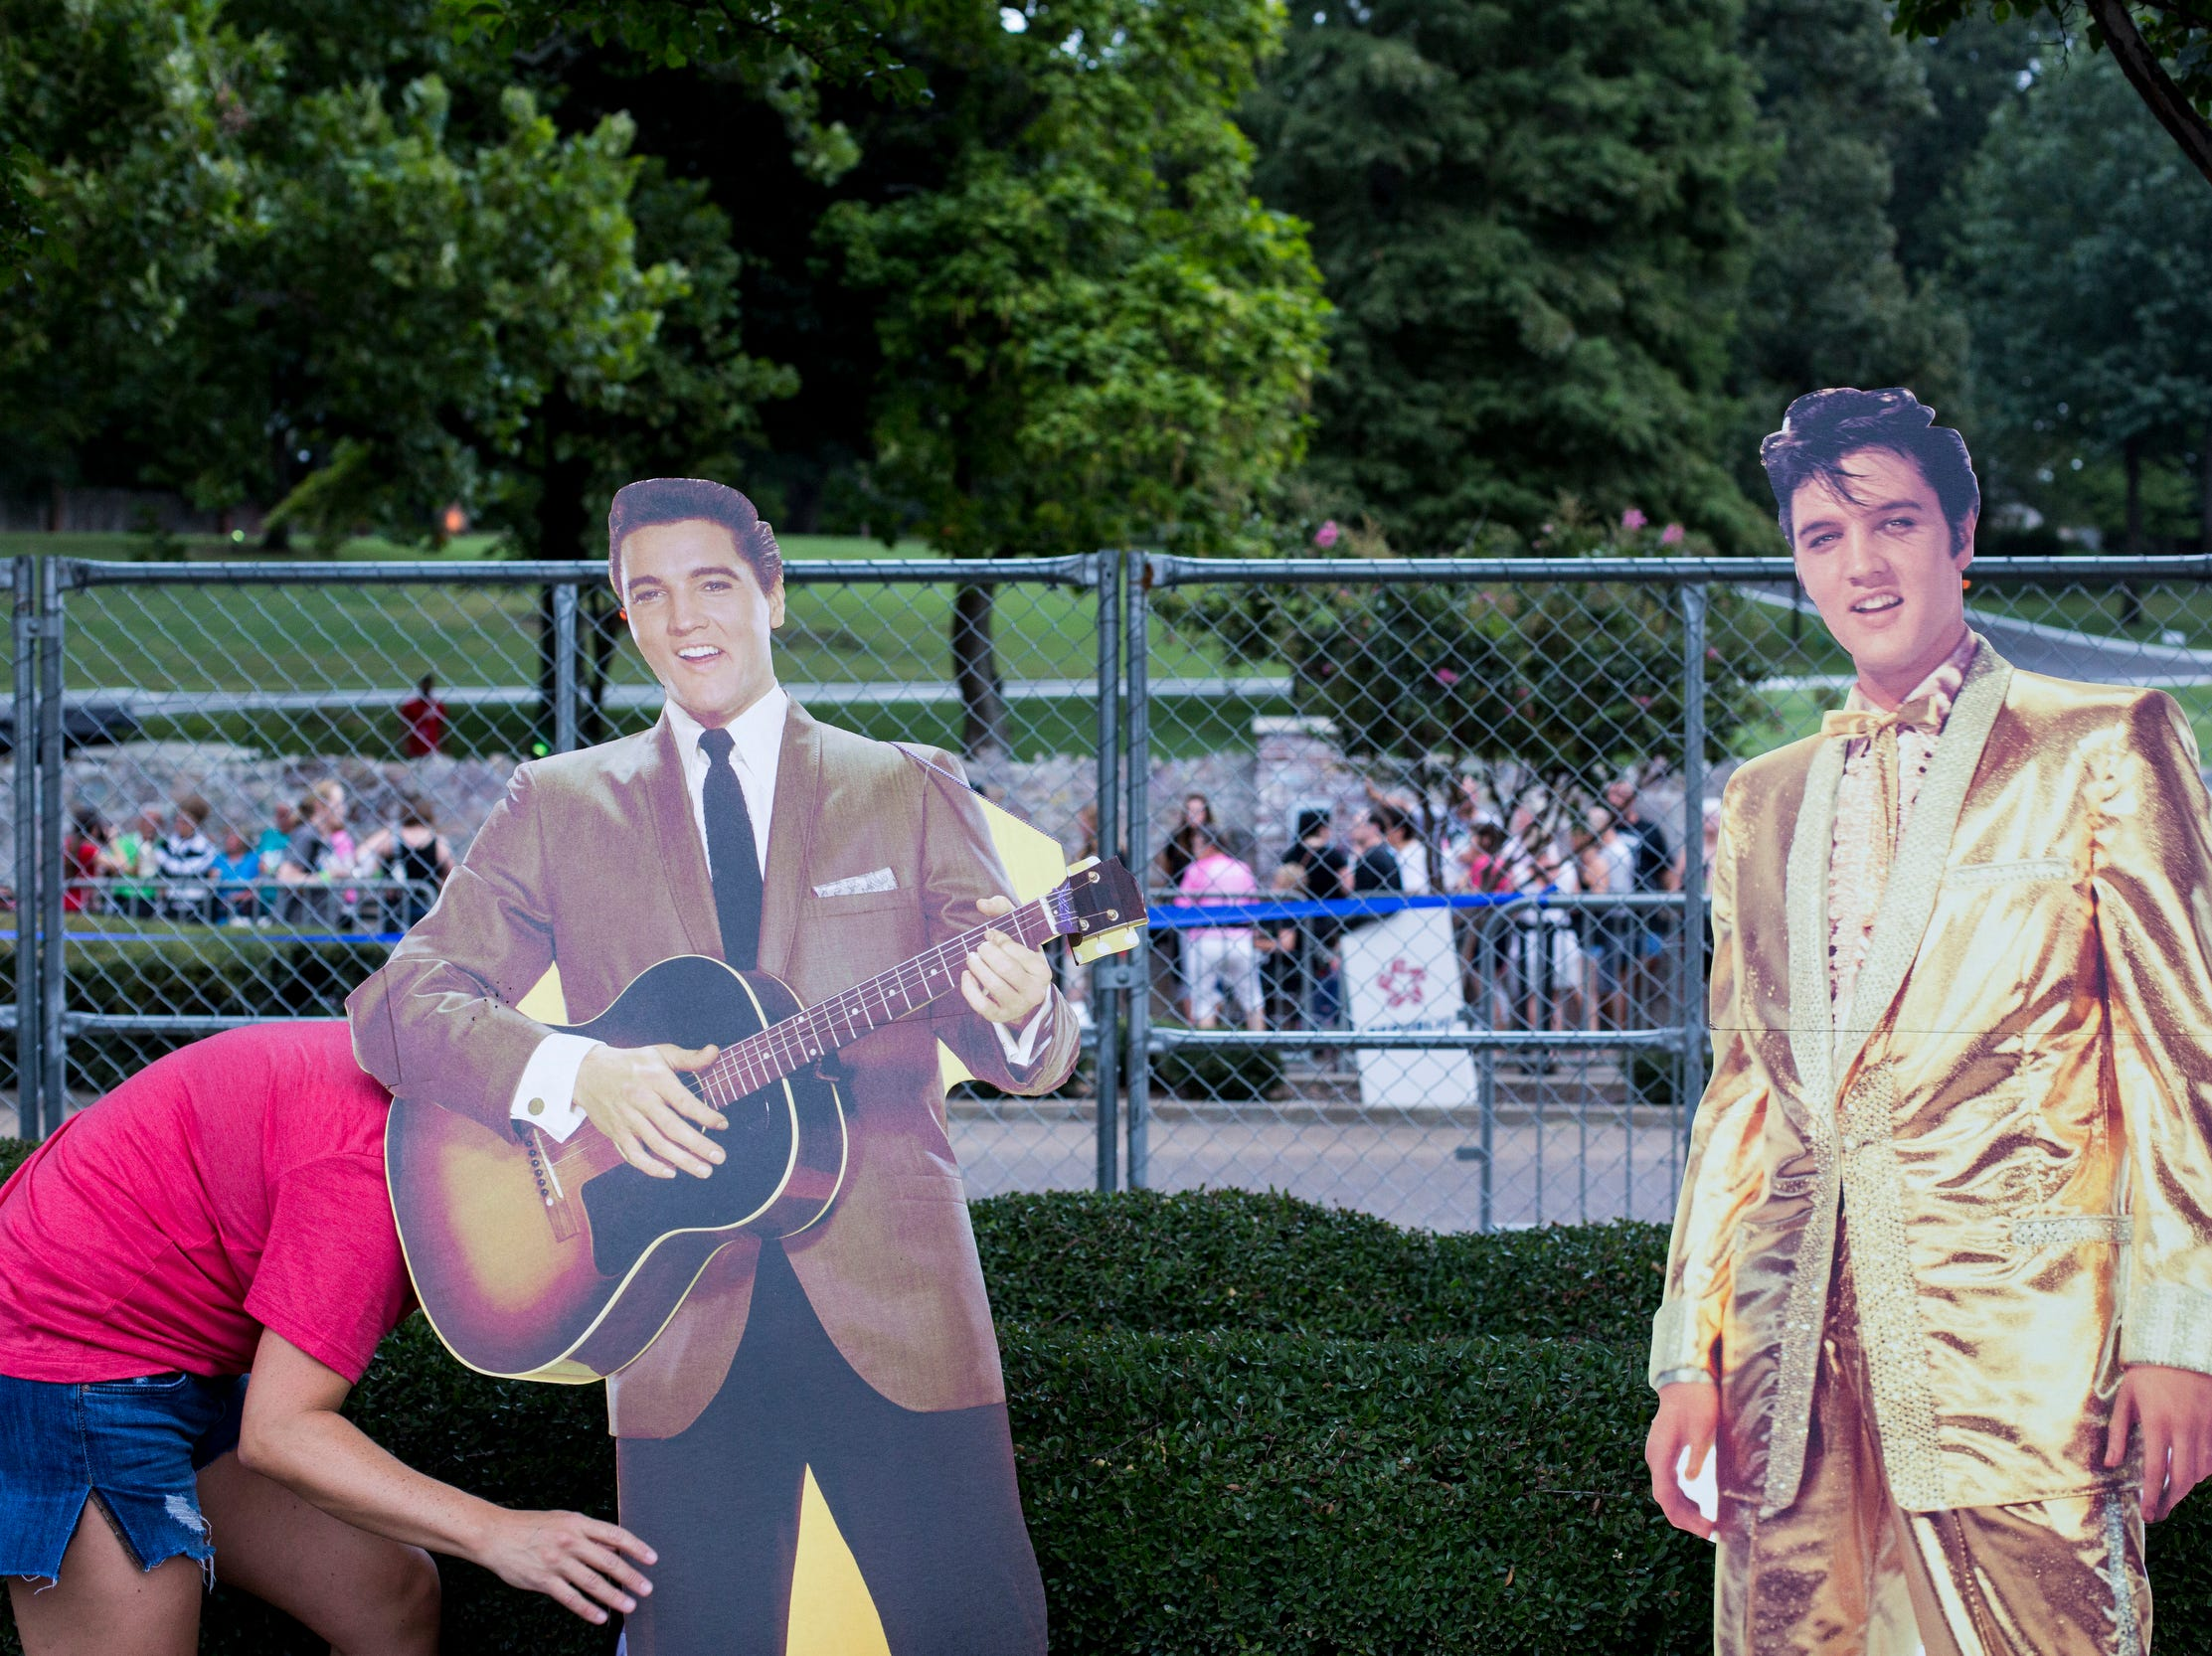 August 14, 2018 - Breland Fischer, from Memphis, works to keep cardboard cutouts of Elvis standing during the 41st anniversary of Presley's Aug. 16 death.